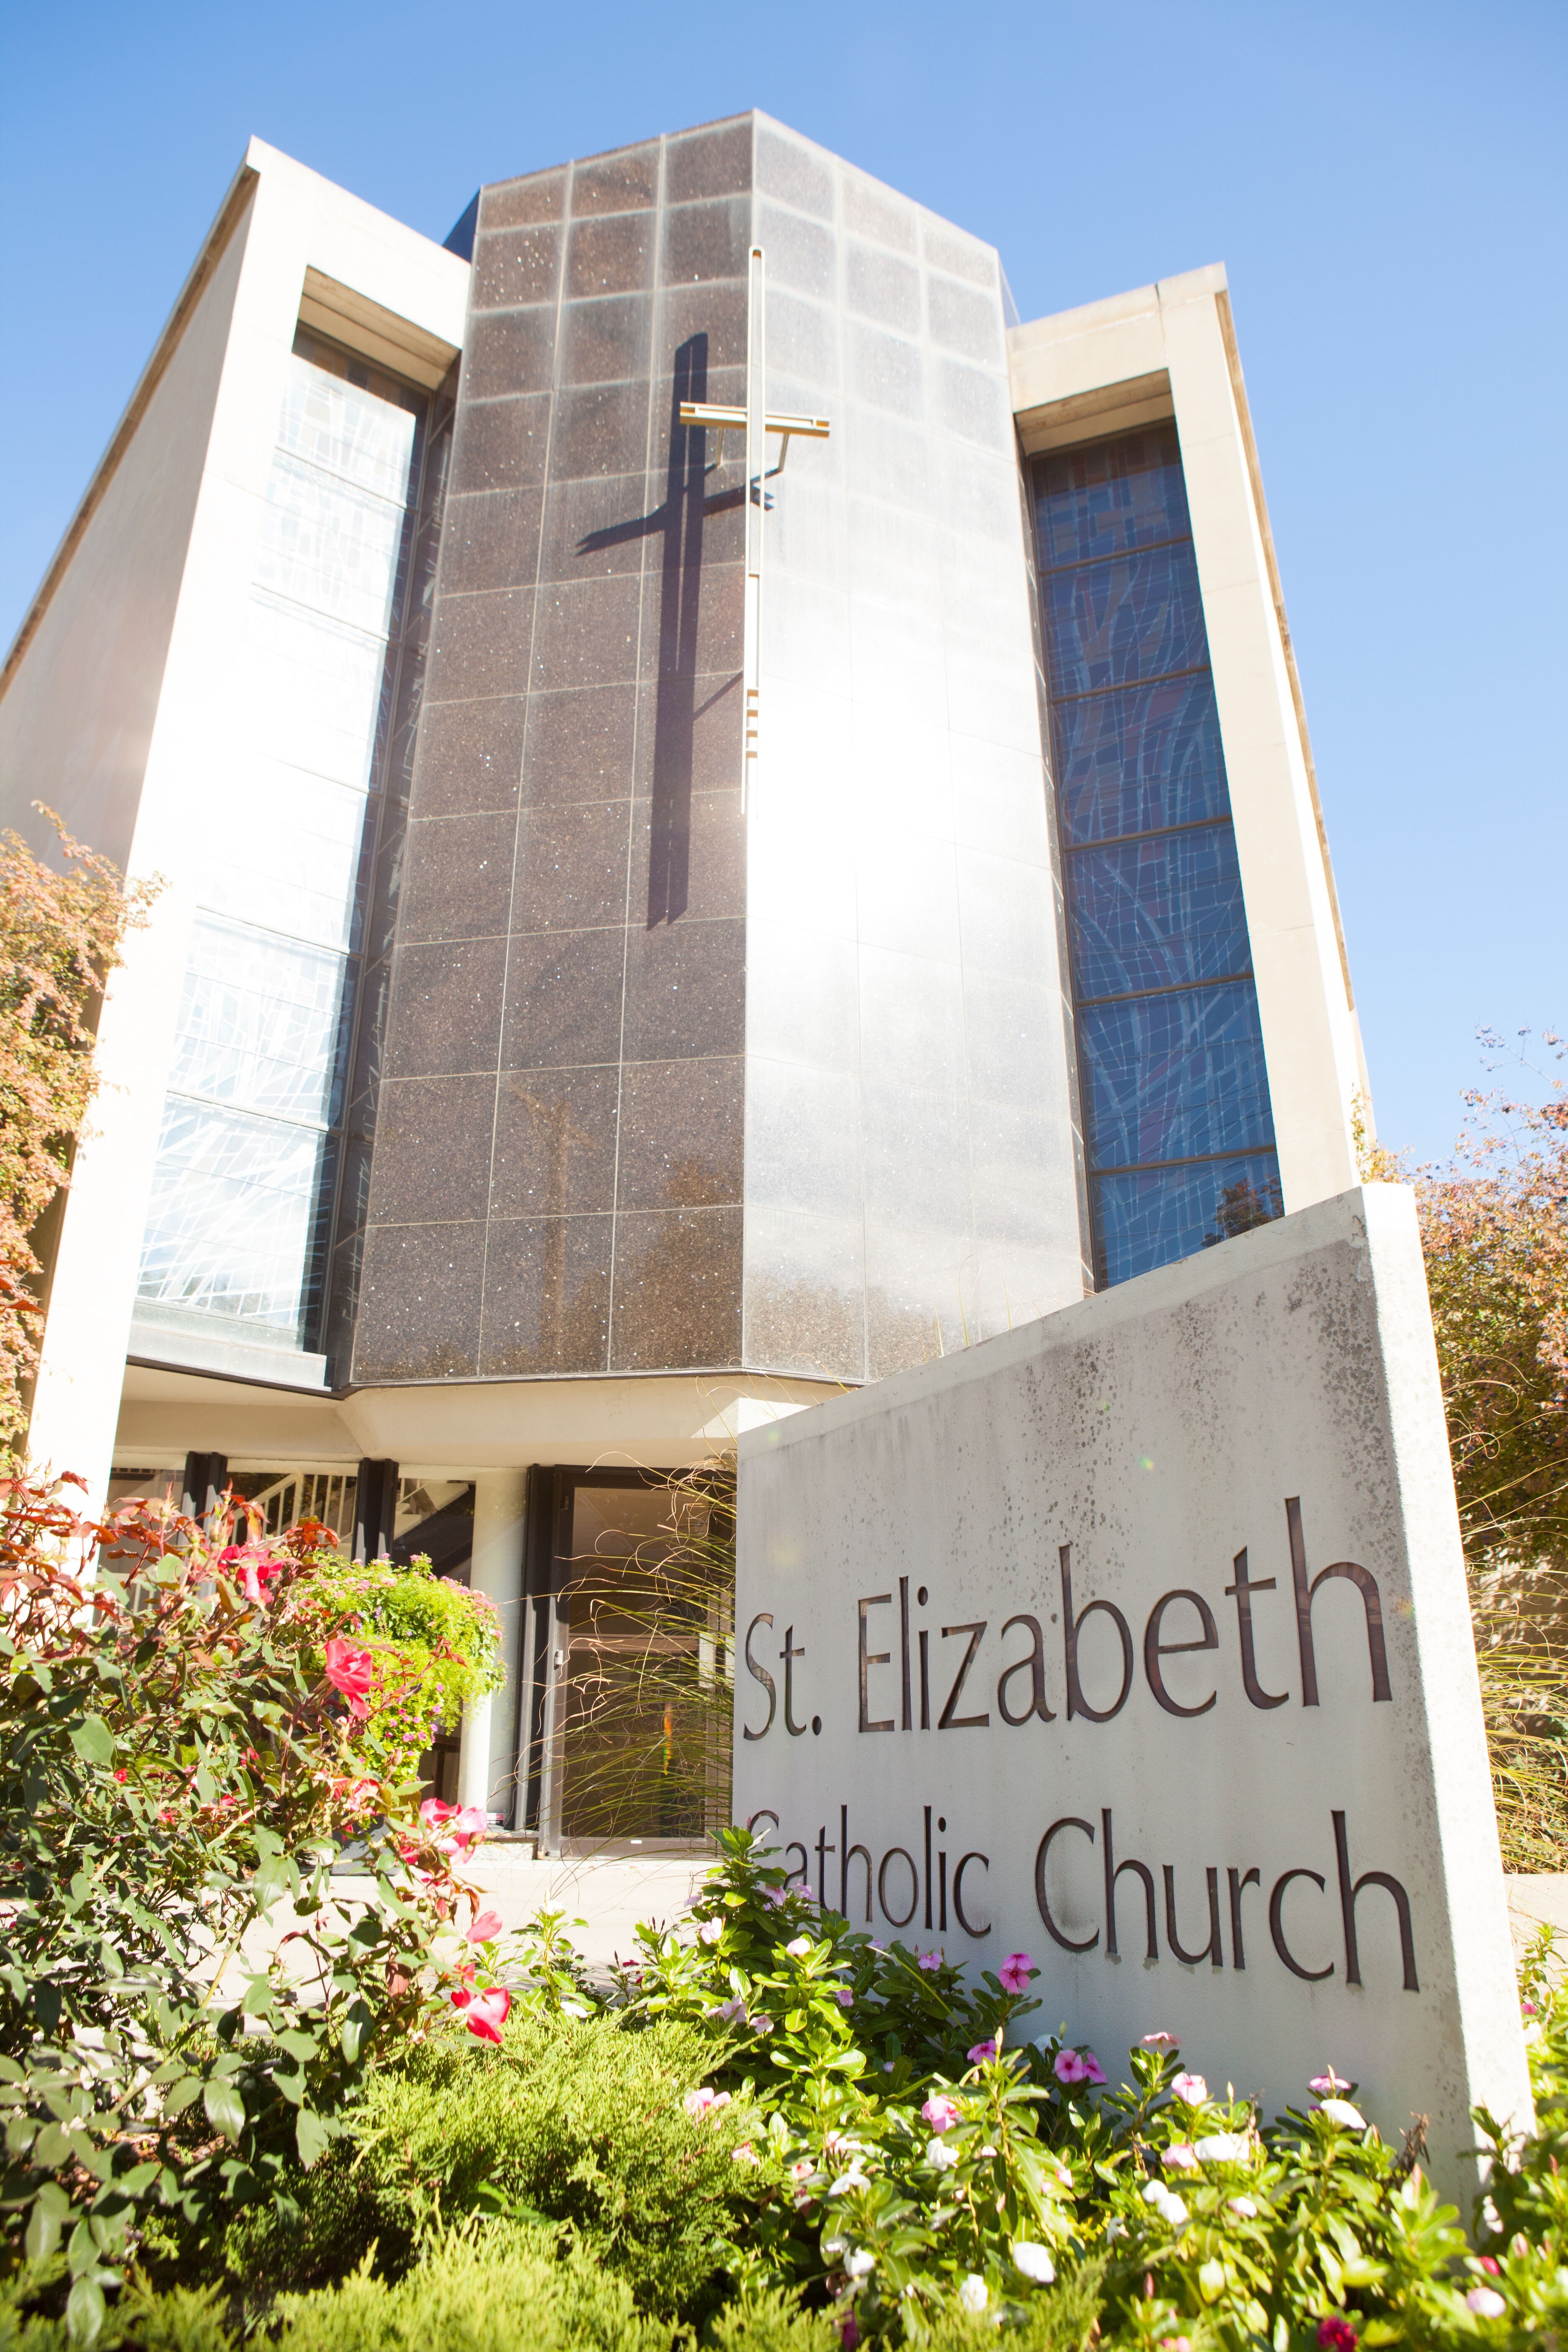 catholic singles in elizabeth city Through our residential programs we impact our community by providing a home to our neighbors  (hud) through the city of elizabeth and the county of union.